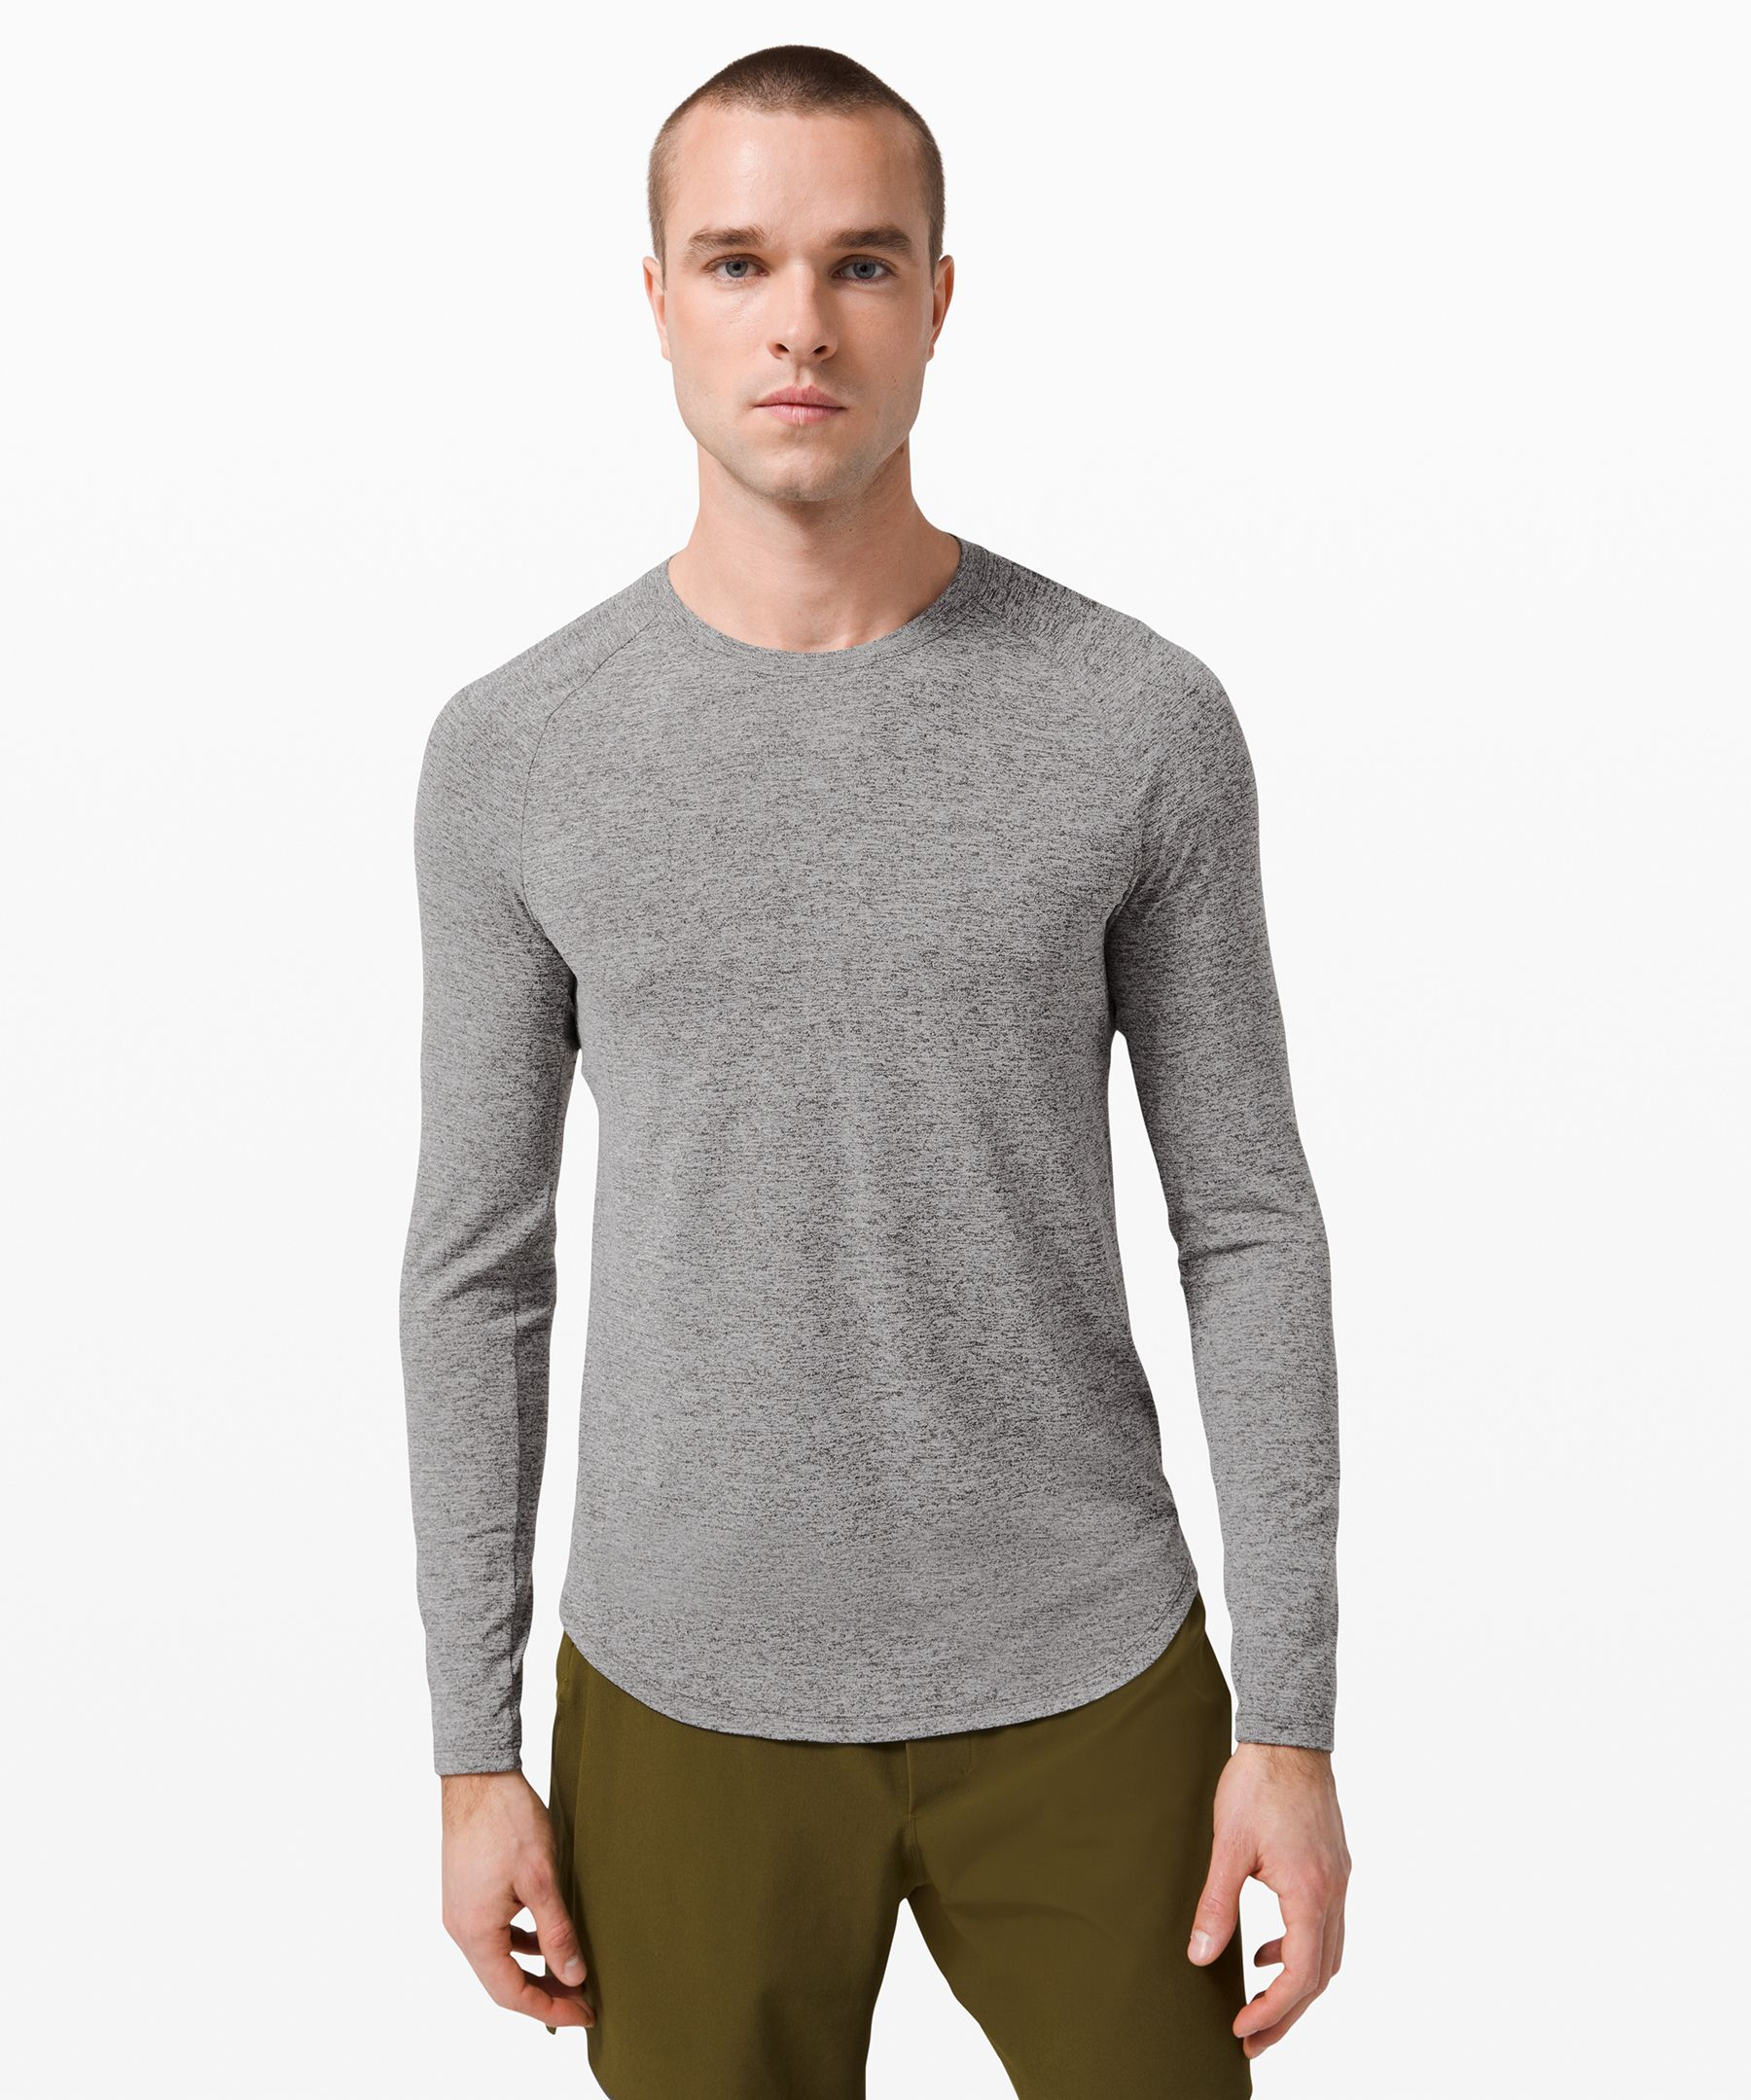 Break a sweat. This long sleeve\\\'s mesh fabric has been developed to feel good against sweaty skin.